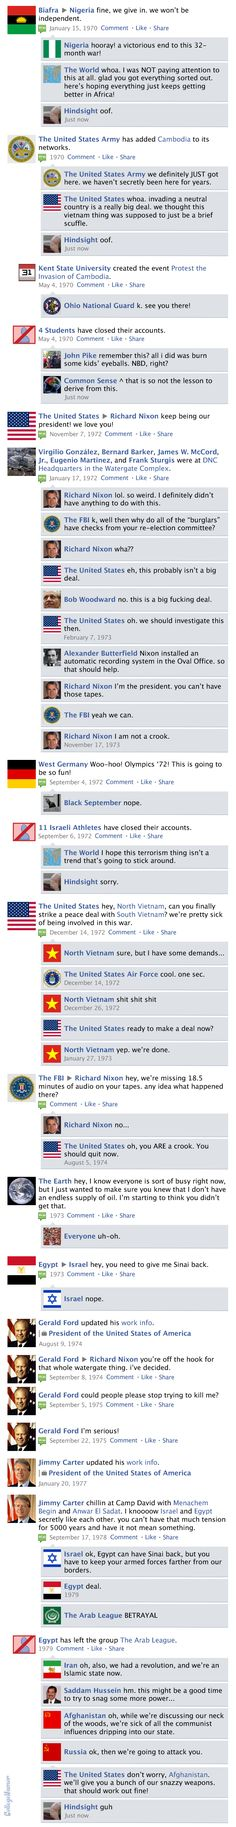 Facebook News Feed History of the World > 1970s